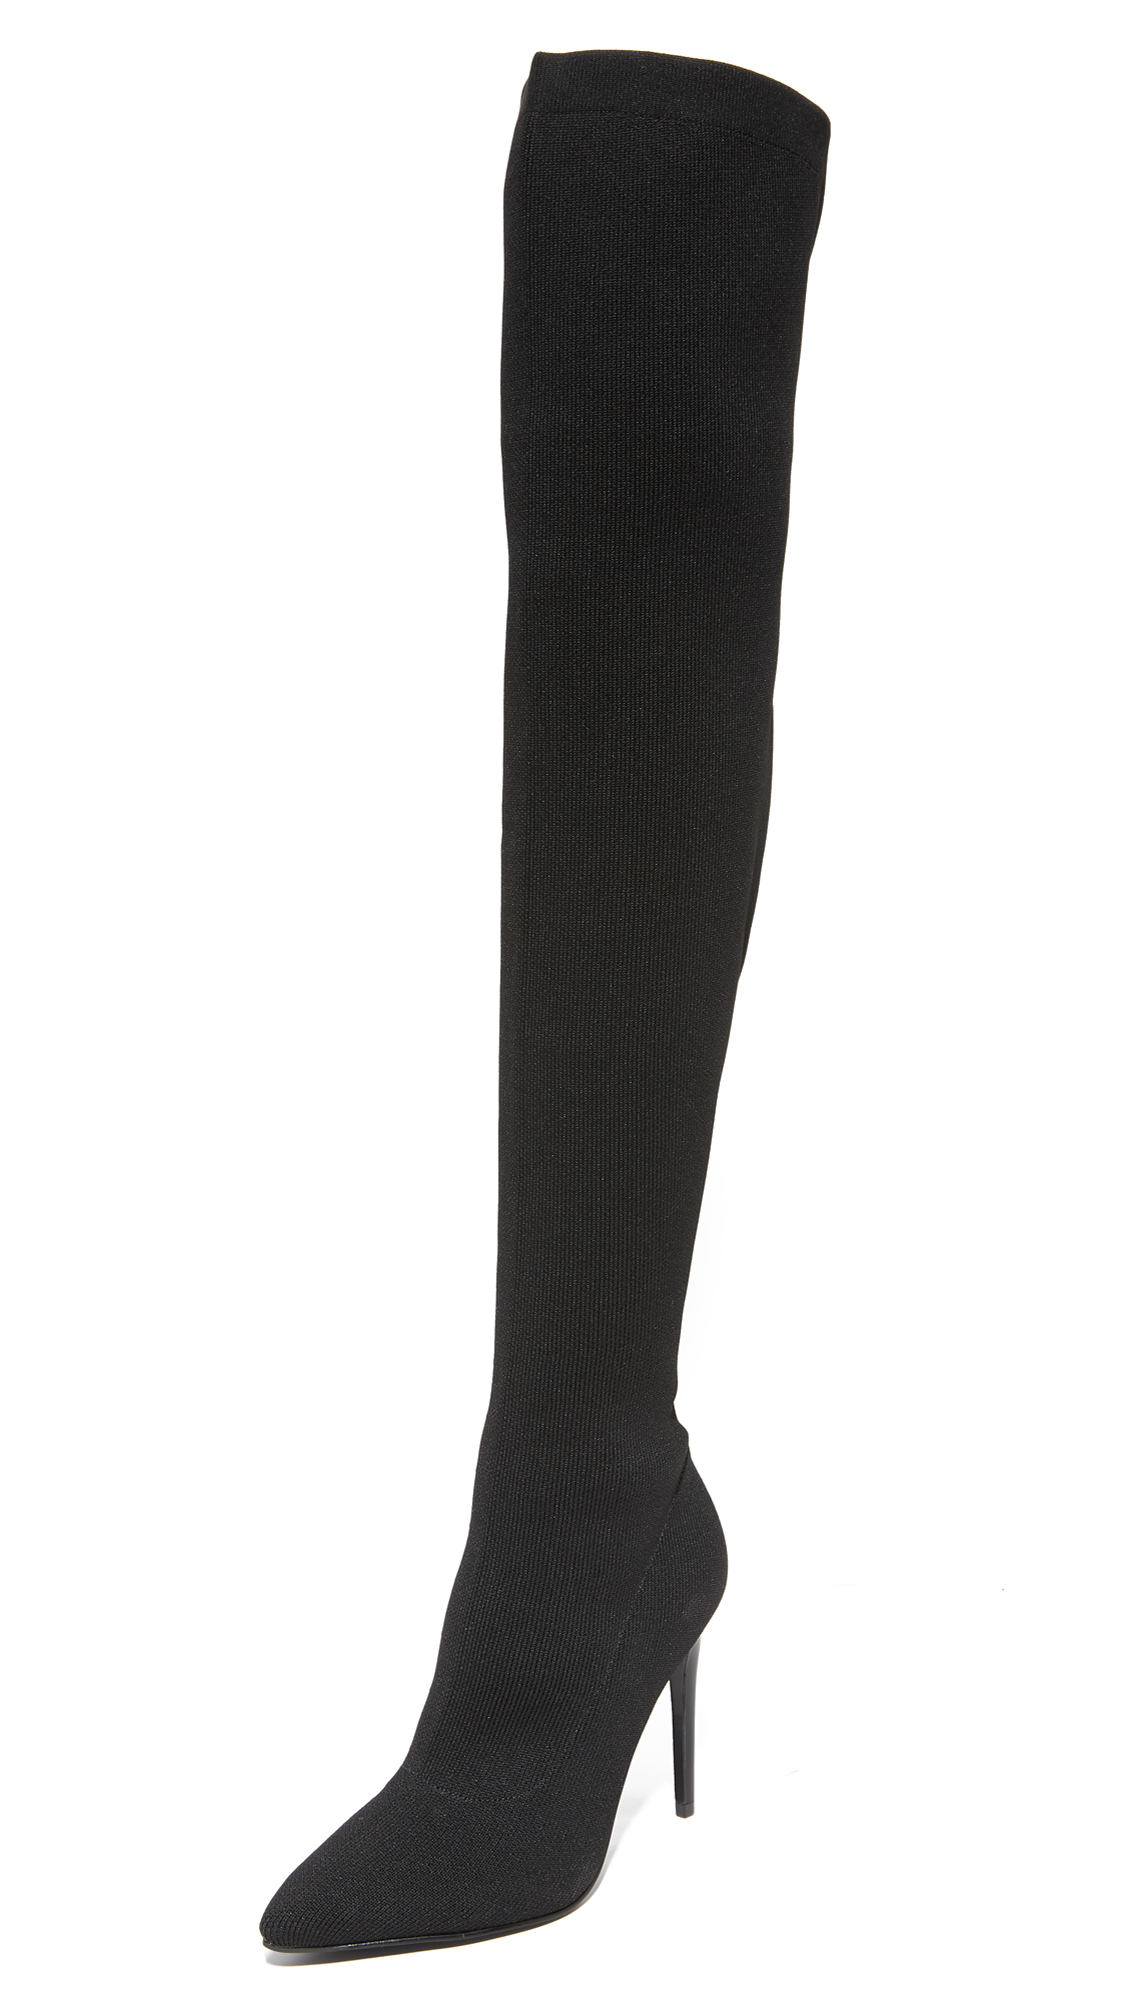 KENDALL + KYLIE Anabel II Thigh High Stretch Boots - Black